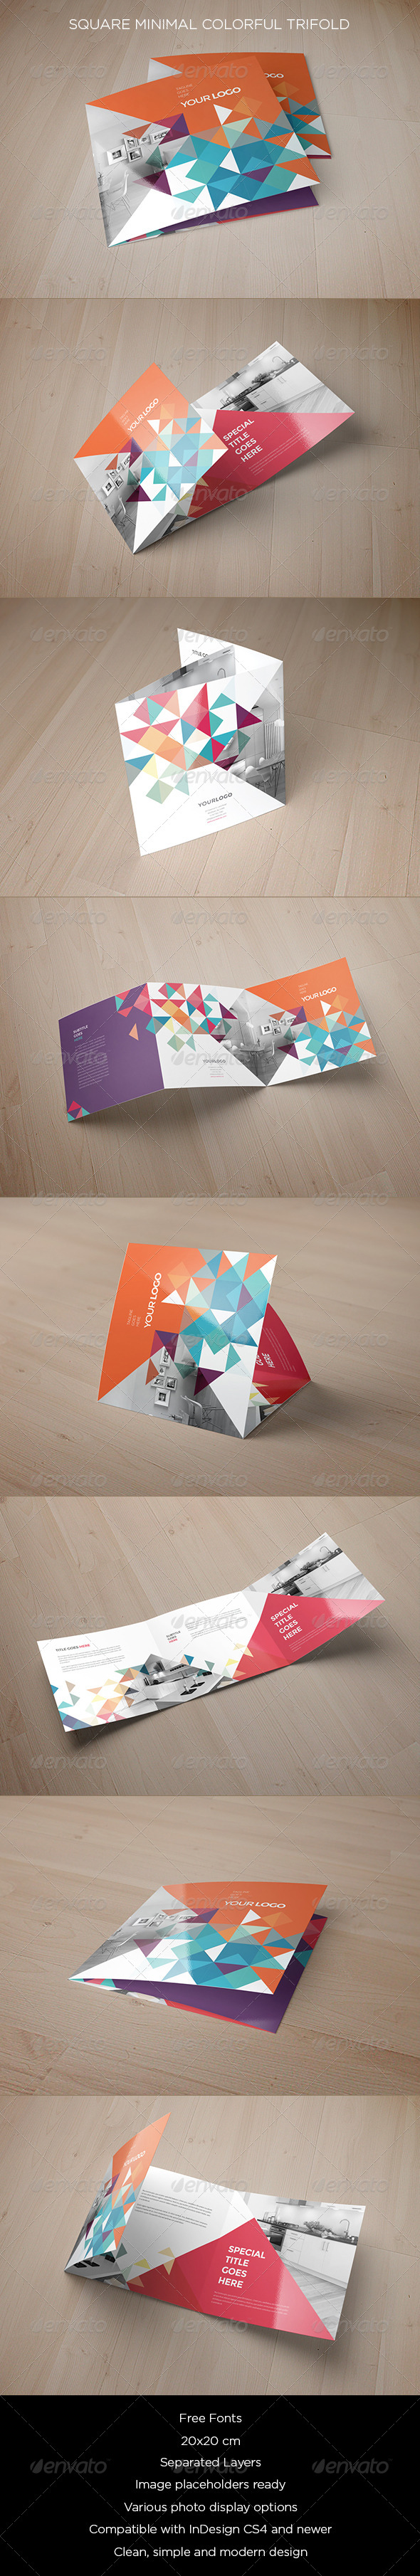 GraphicRiver Square Minimal Colorful Trifold 8753468